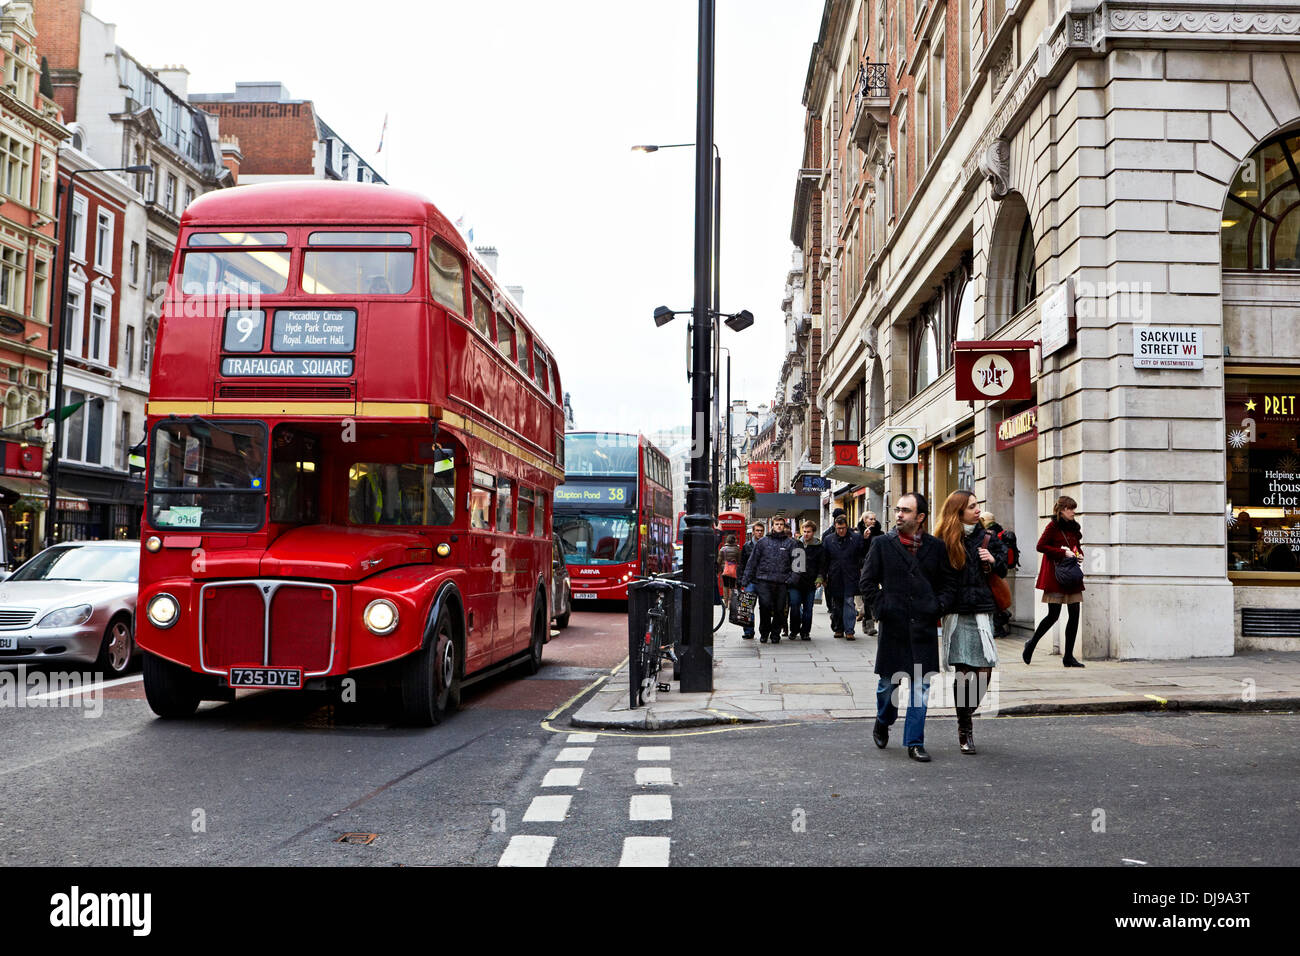 Picadilly Street, London, England, UK, Christmas, Shopping, Winter - Stock Image